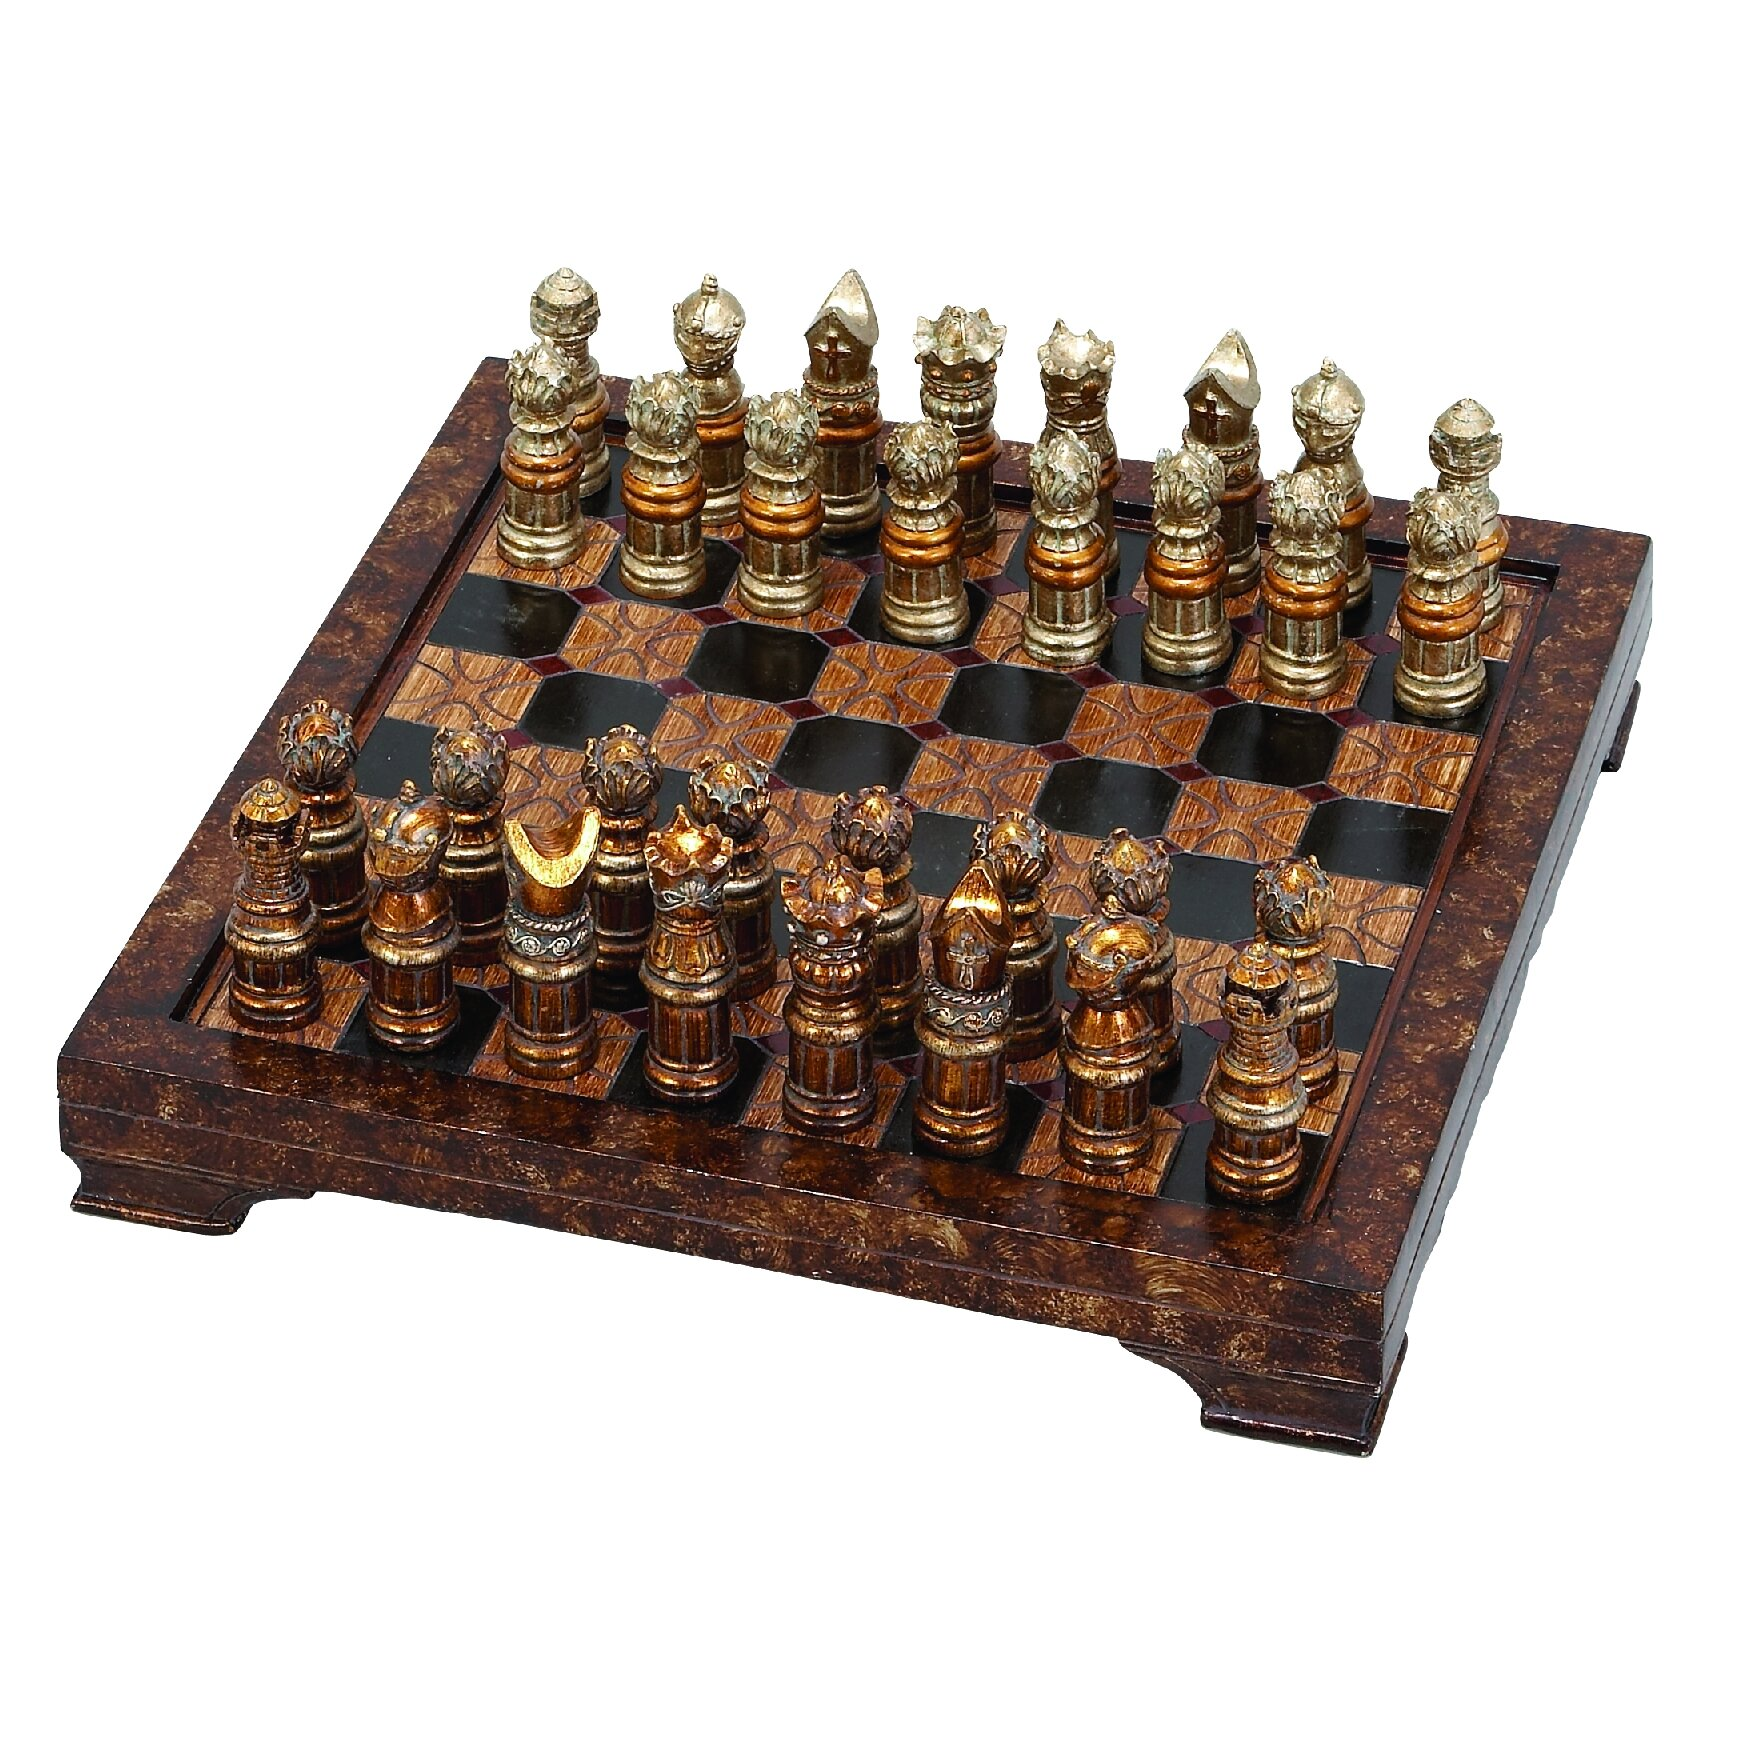 Rosalind wheeler decorative hosting styled chess board set reviews wayfair - Ornate chess sets ...